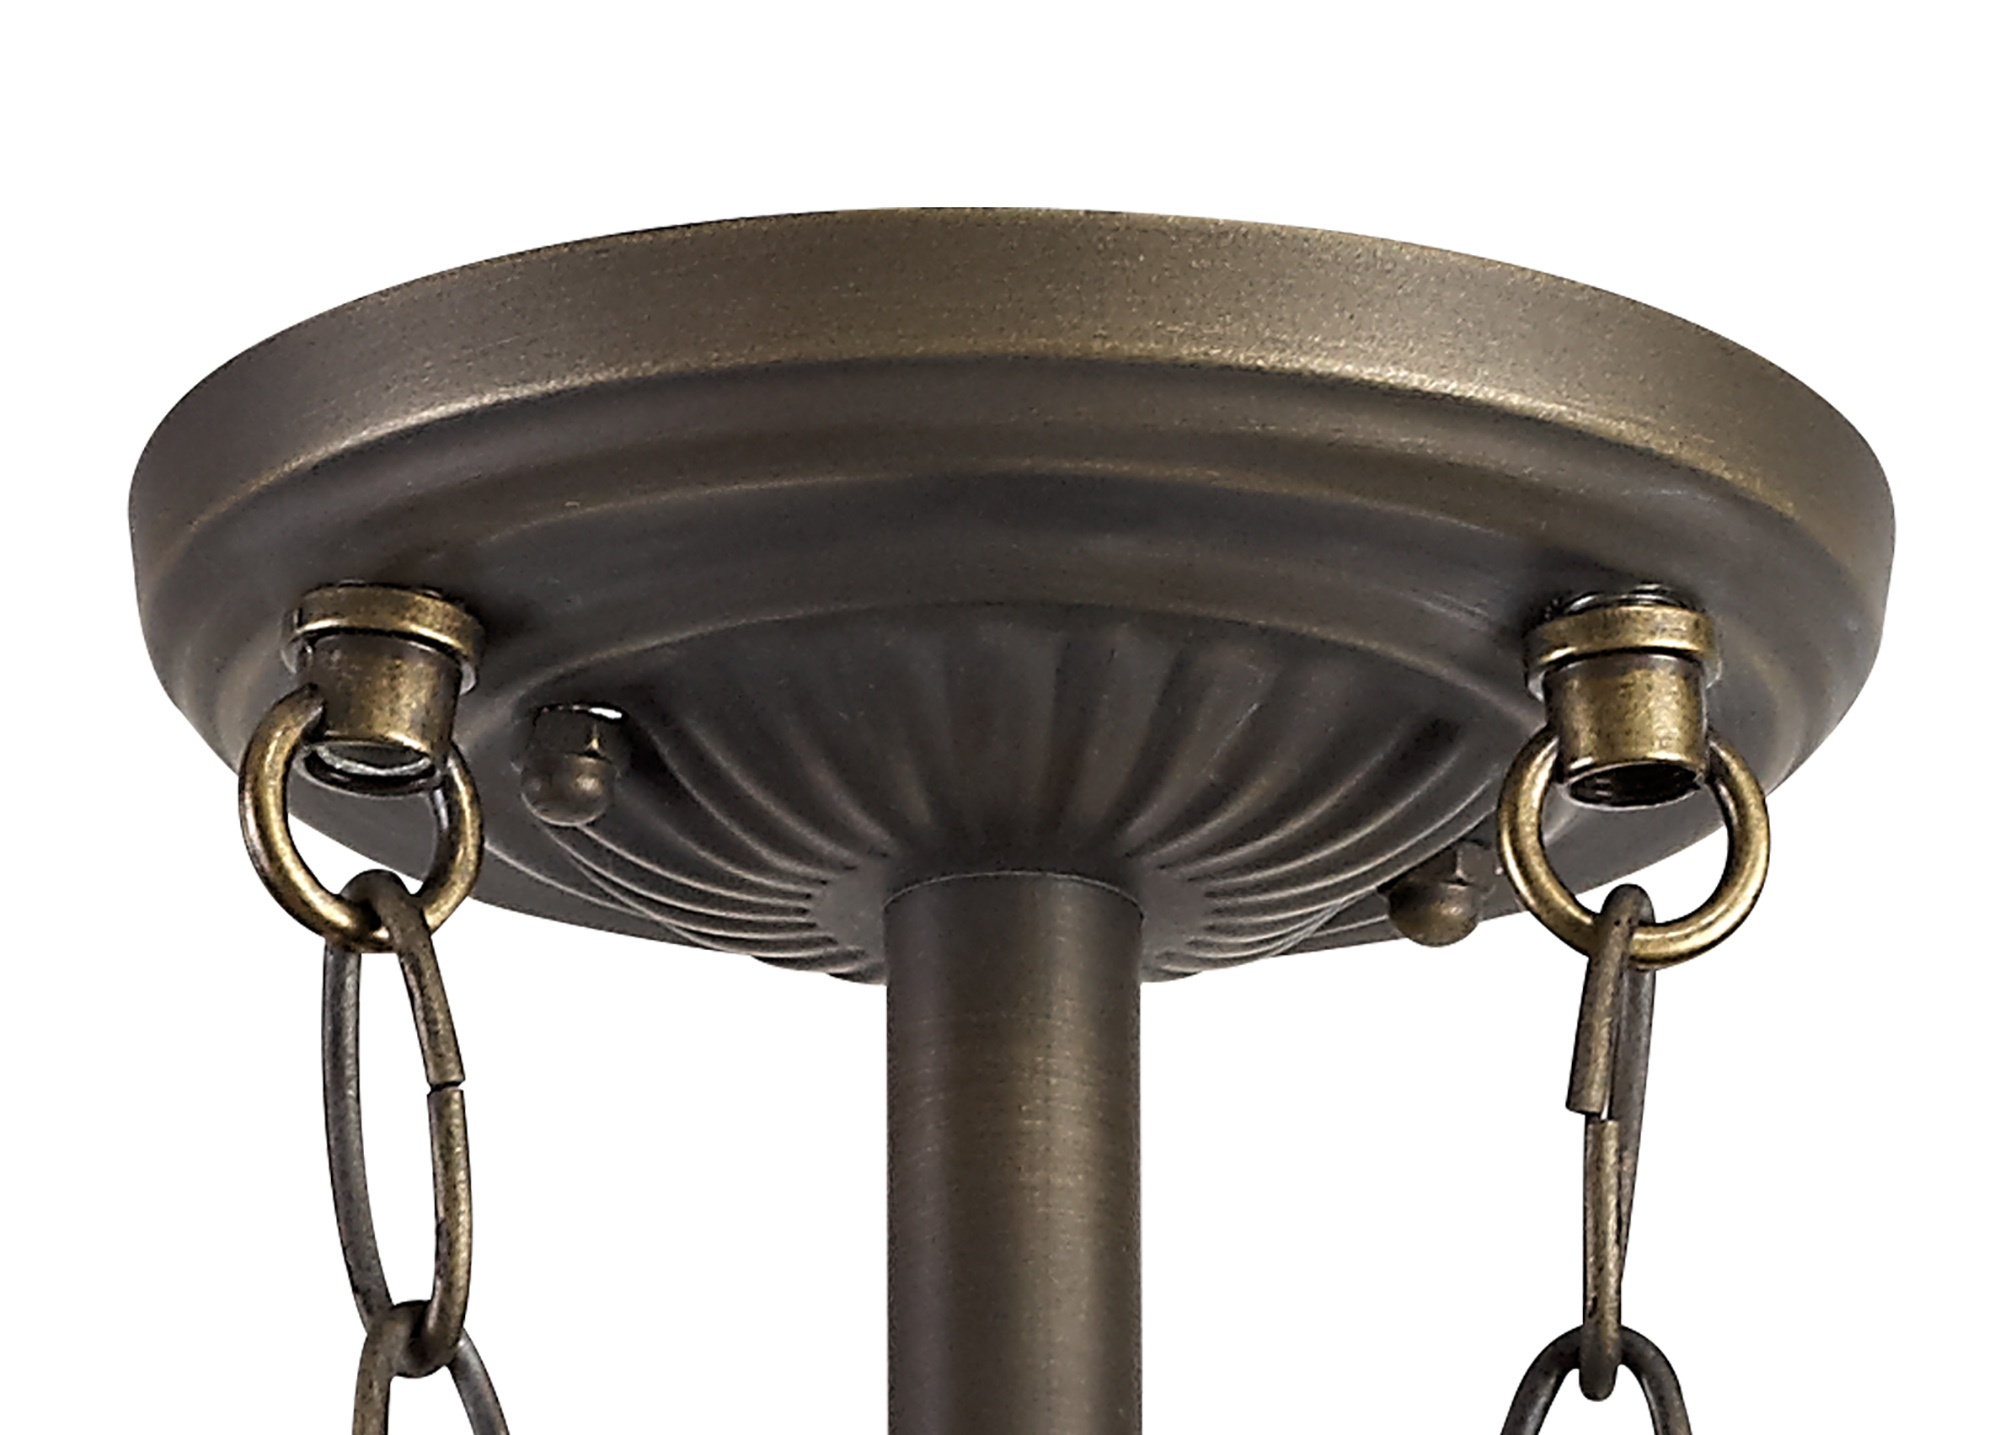 3 Light E27 Semi Ceiling With Tiffany Shade 40cm Shade, White/Grey/Black/Clear Crystal/Aged Antique Brass